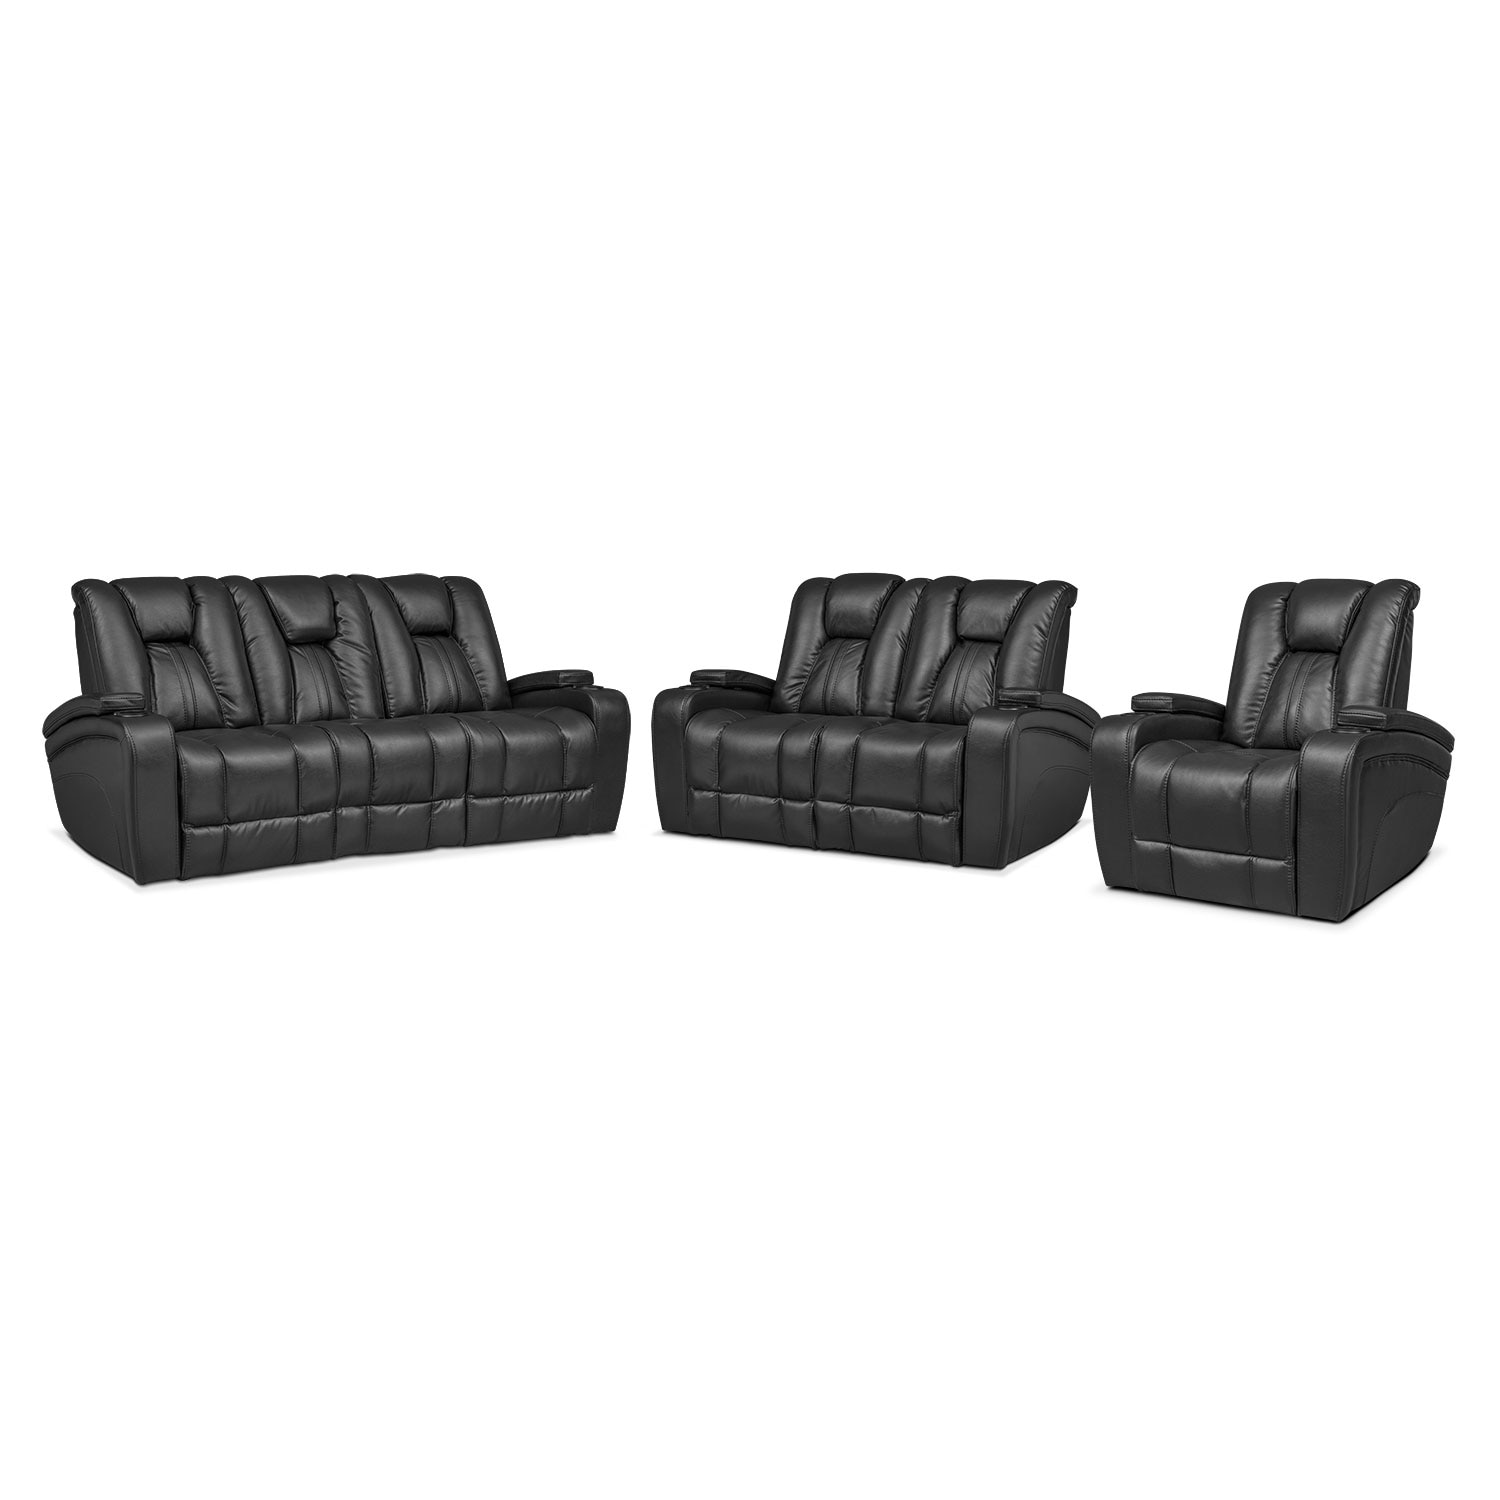 pulsar power reclining sofa power reclining loveseat and power recliner set black - Power Recliner